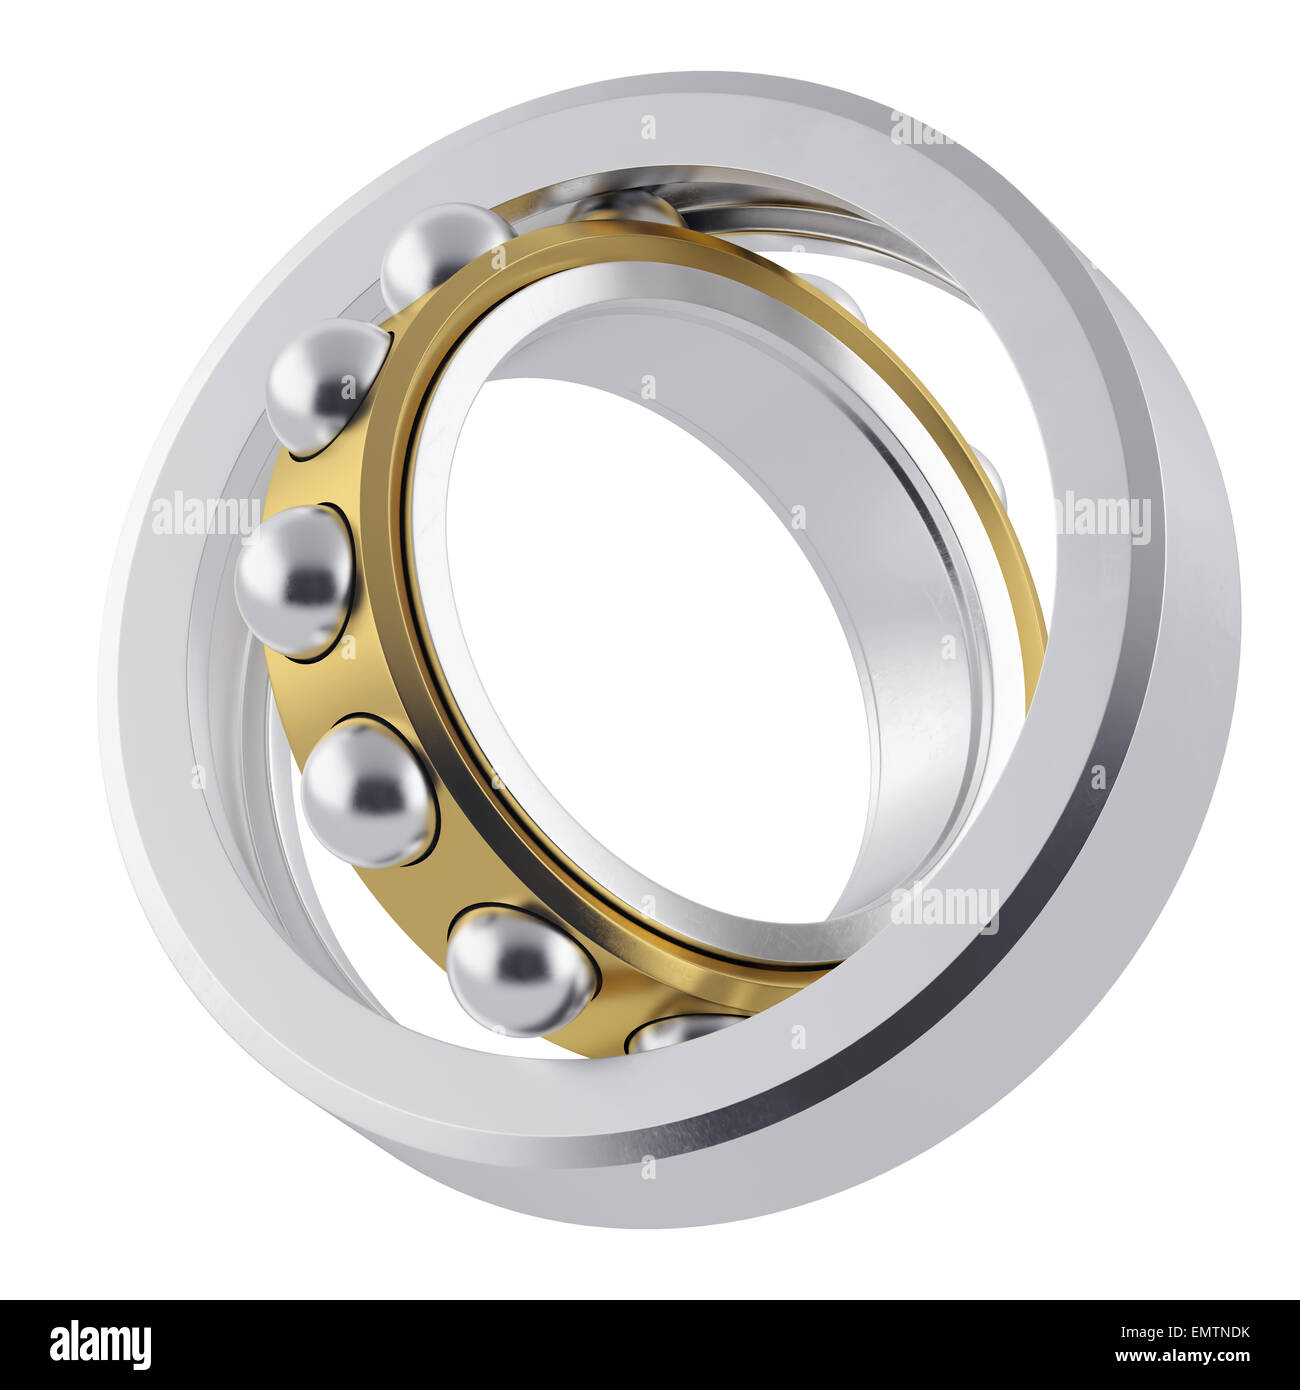 Metal whirling bearing with attrition. - Stock Image